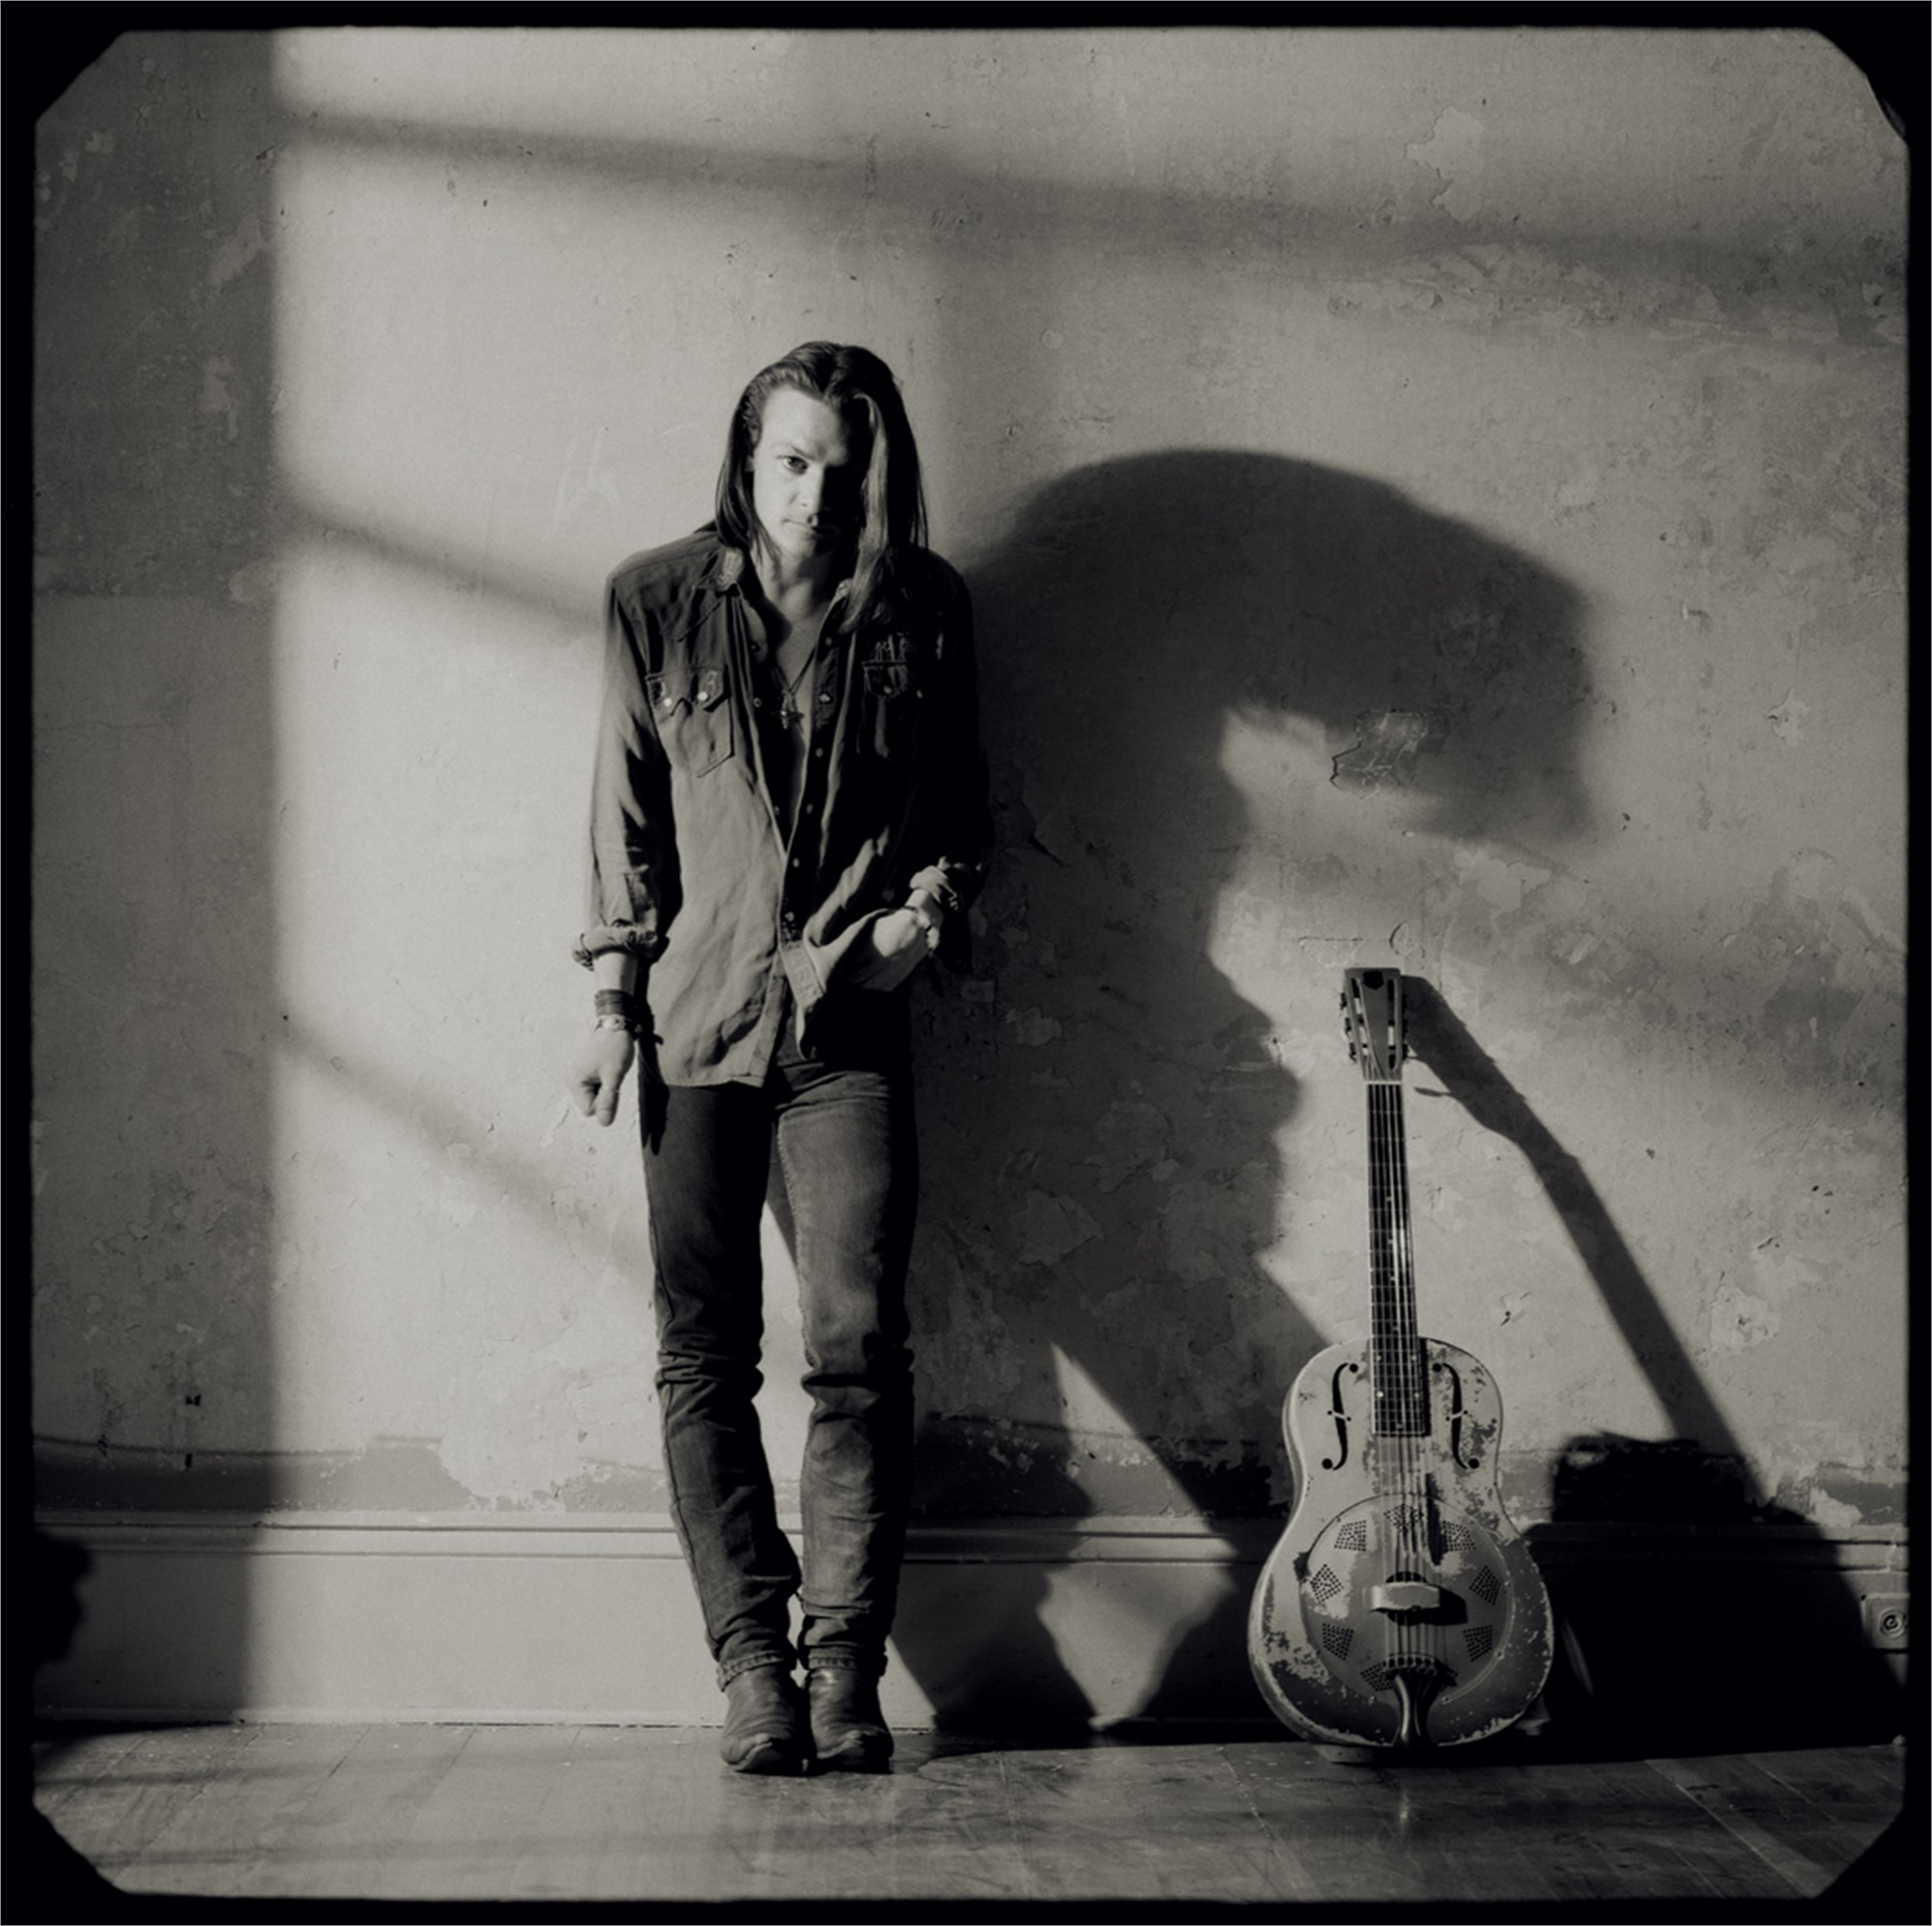 91026 Chris Whitley Against the Wall 3 BW by Timothy White